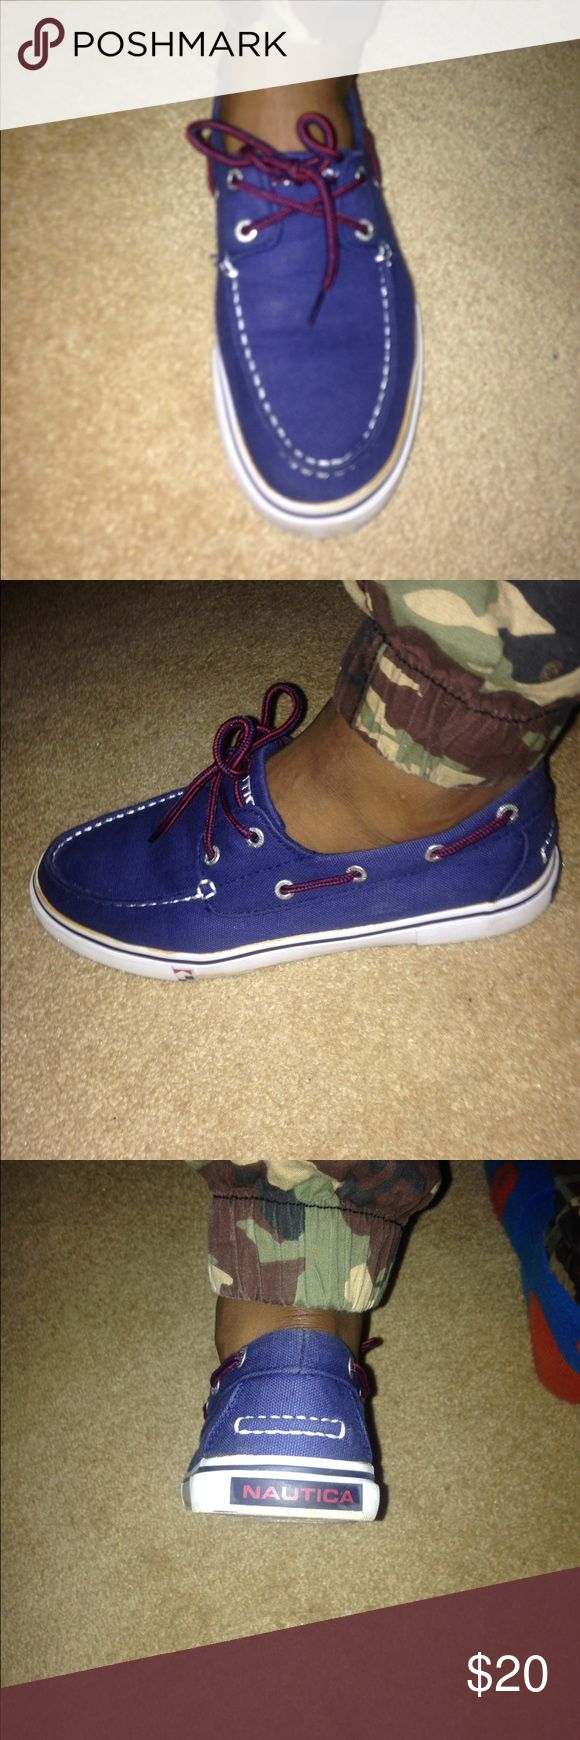 Boys boat shoes Boys, navy blue, size 7 1/2 shoes. Worn maybe 3 times. No wear or tear. Still in great condition Nautica Shoes